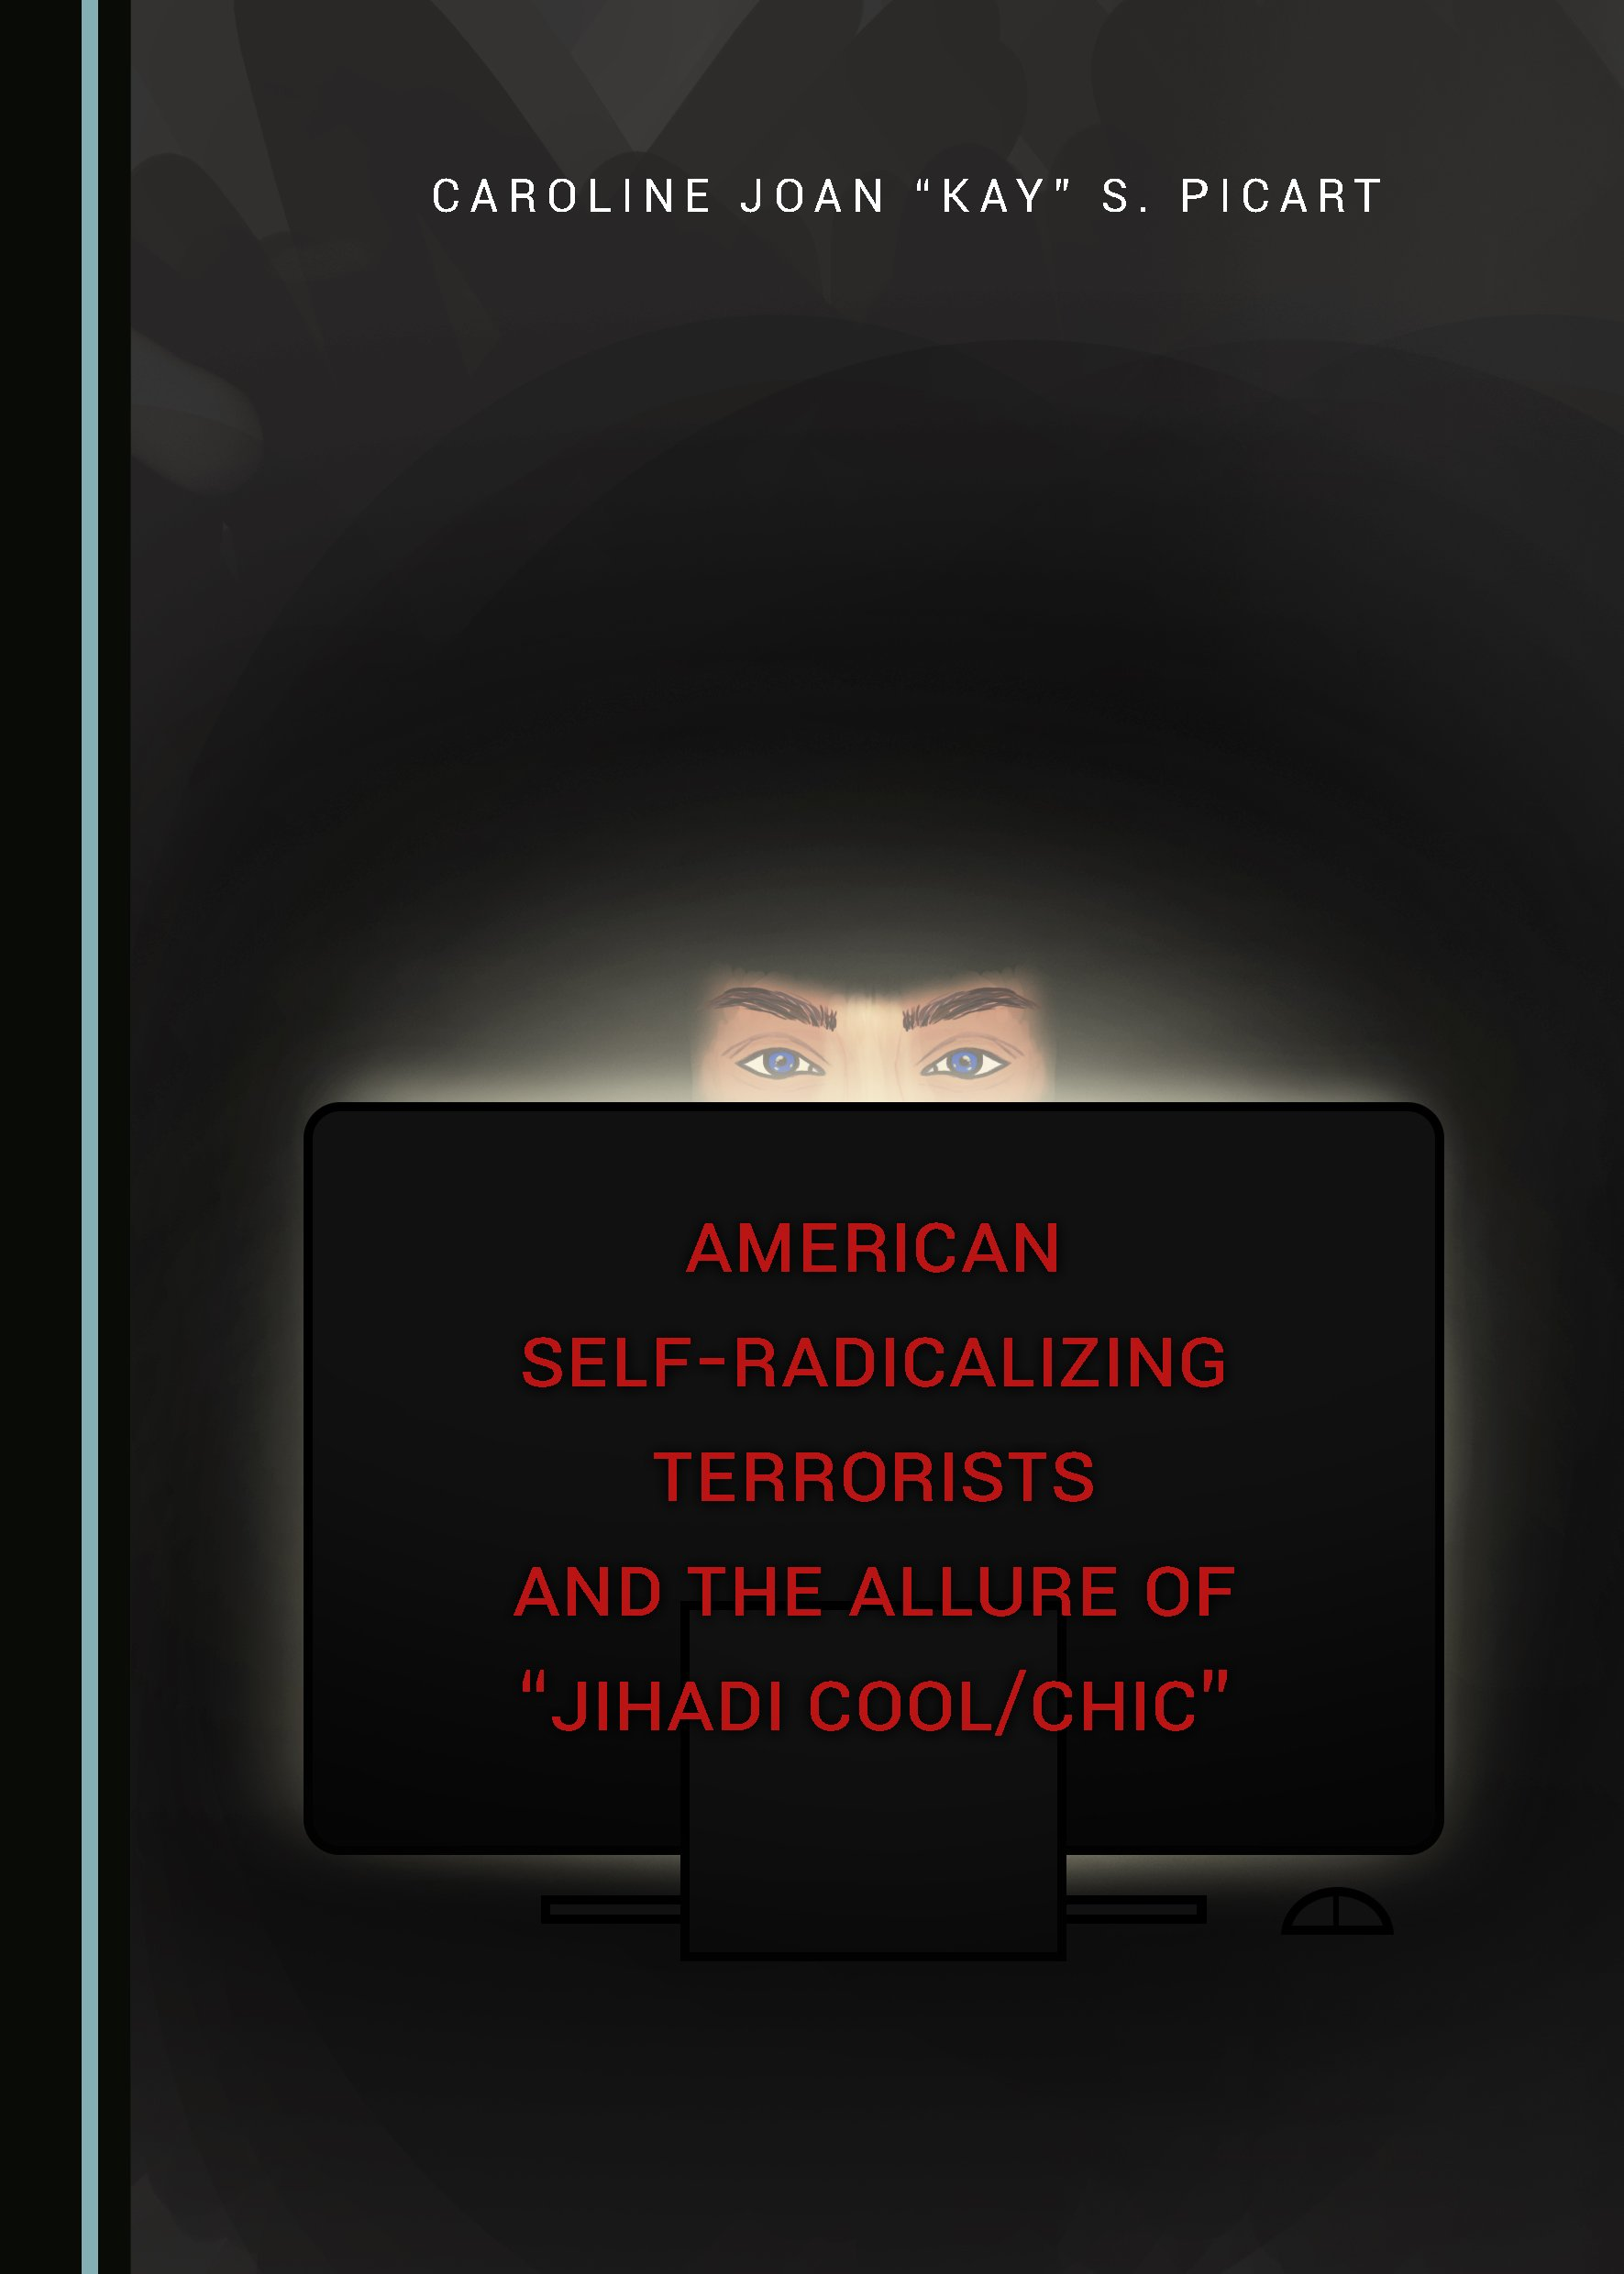 American Self-Radicalizing Terrorists and the Allure of